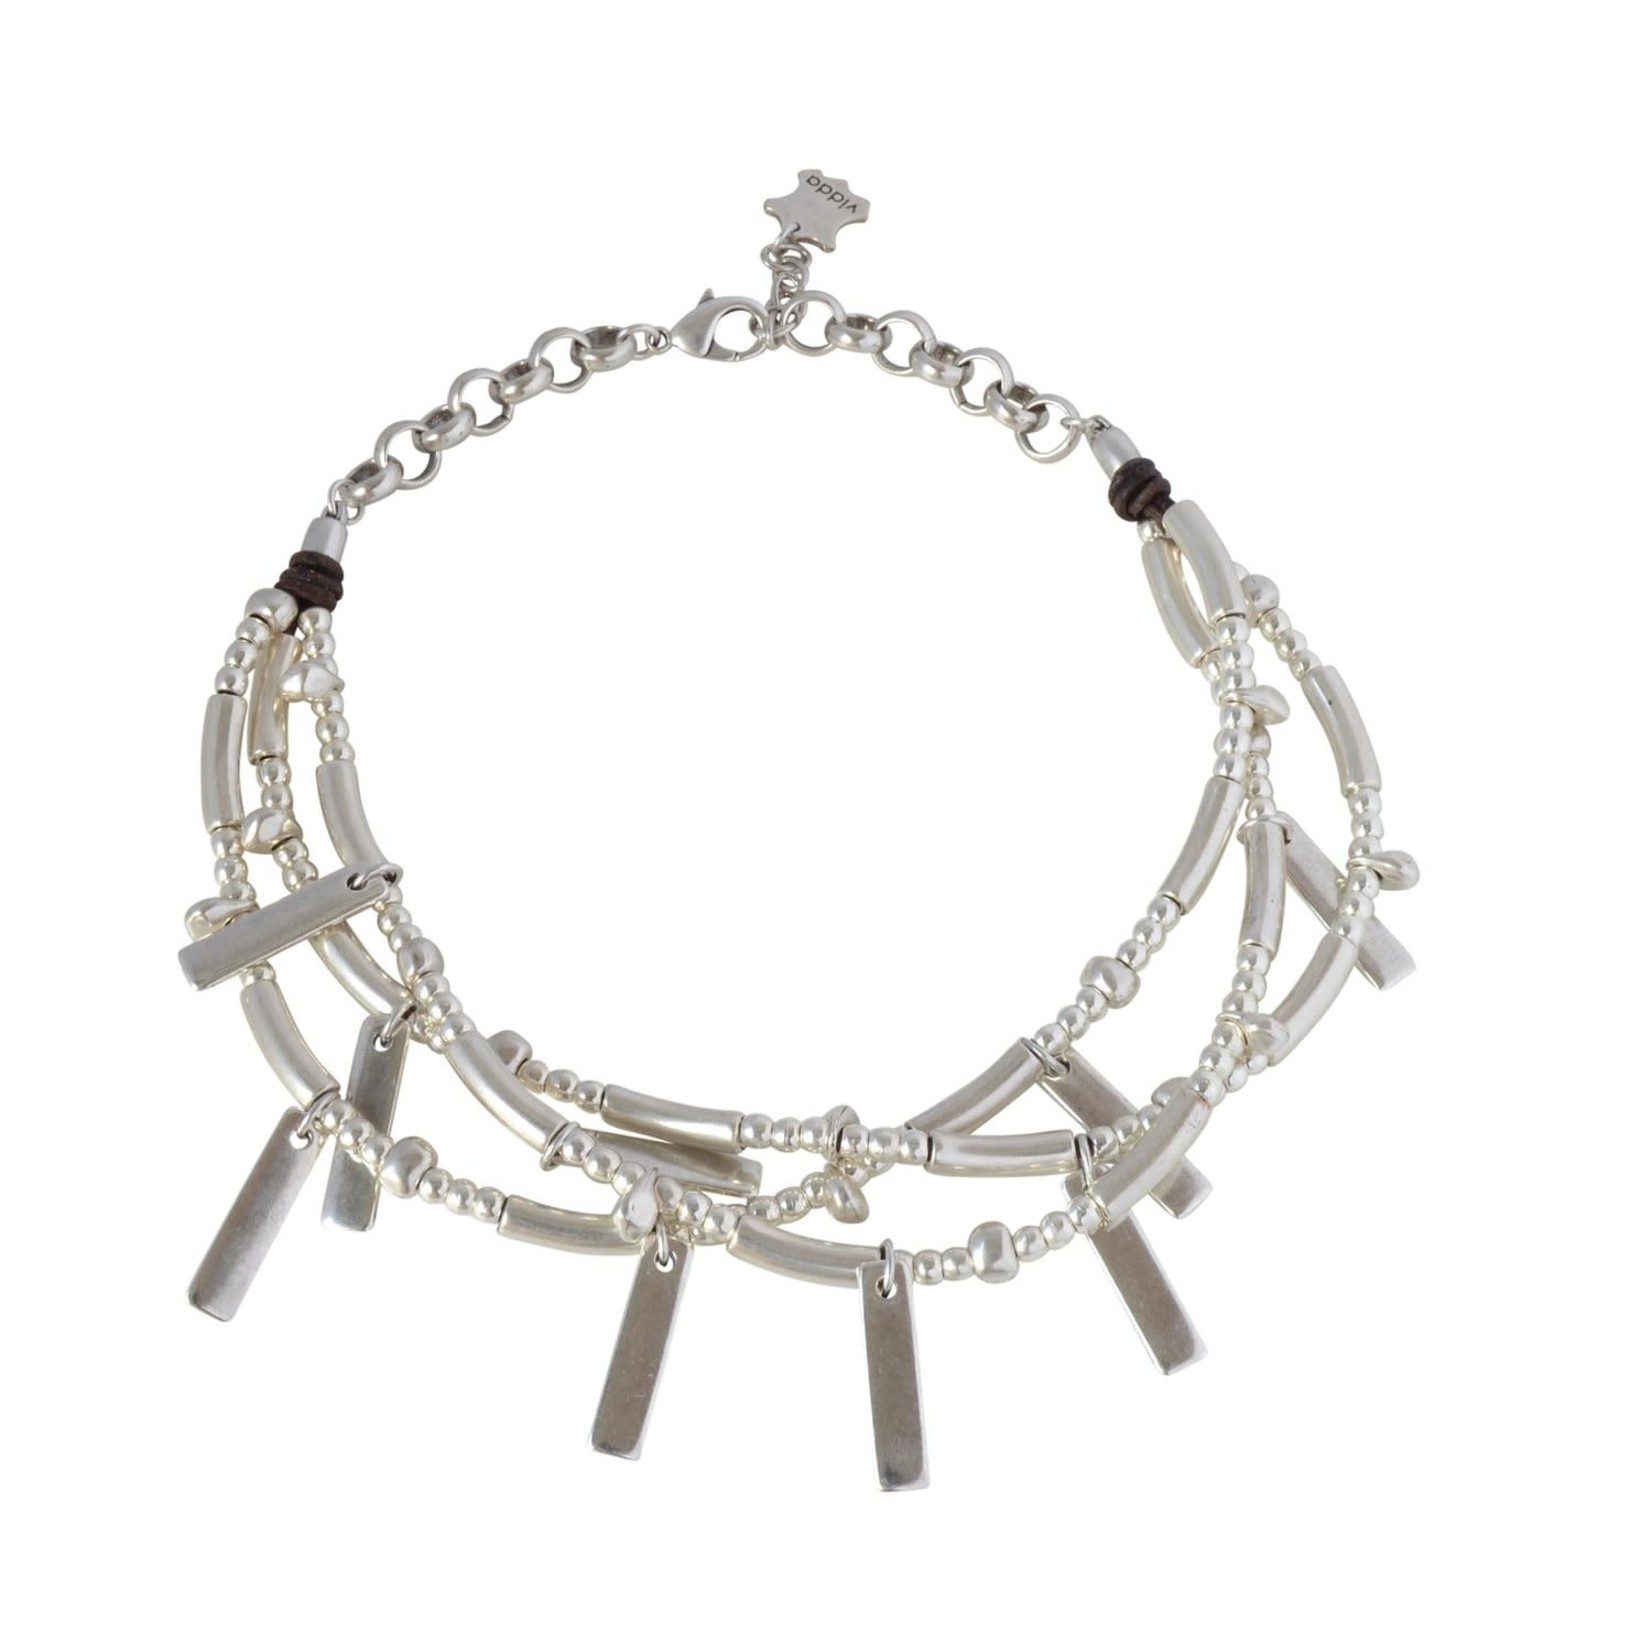 Necklace/Osage/SilvPlated Bars&Beads/Short